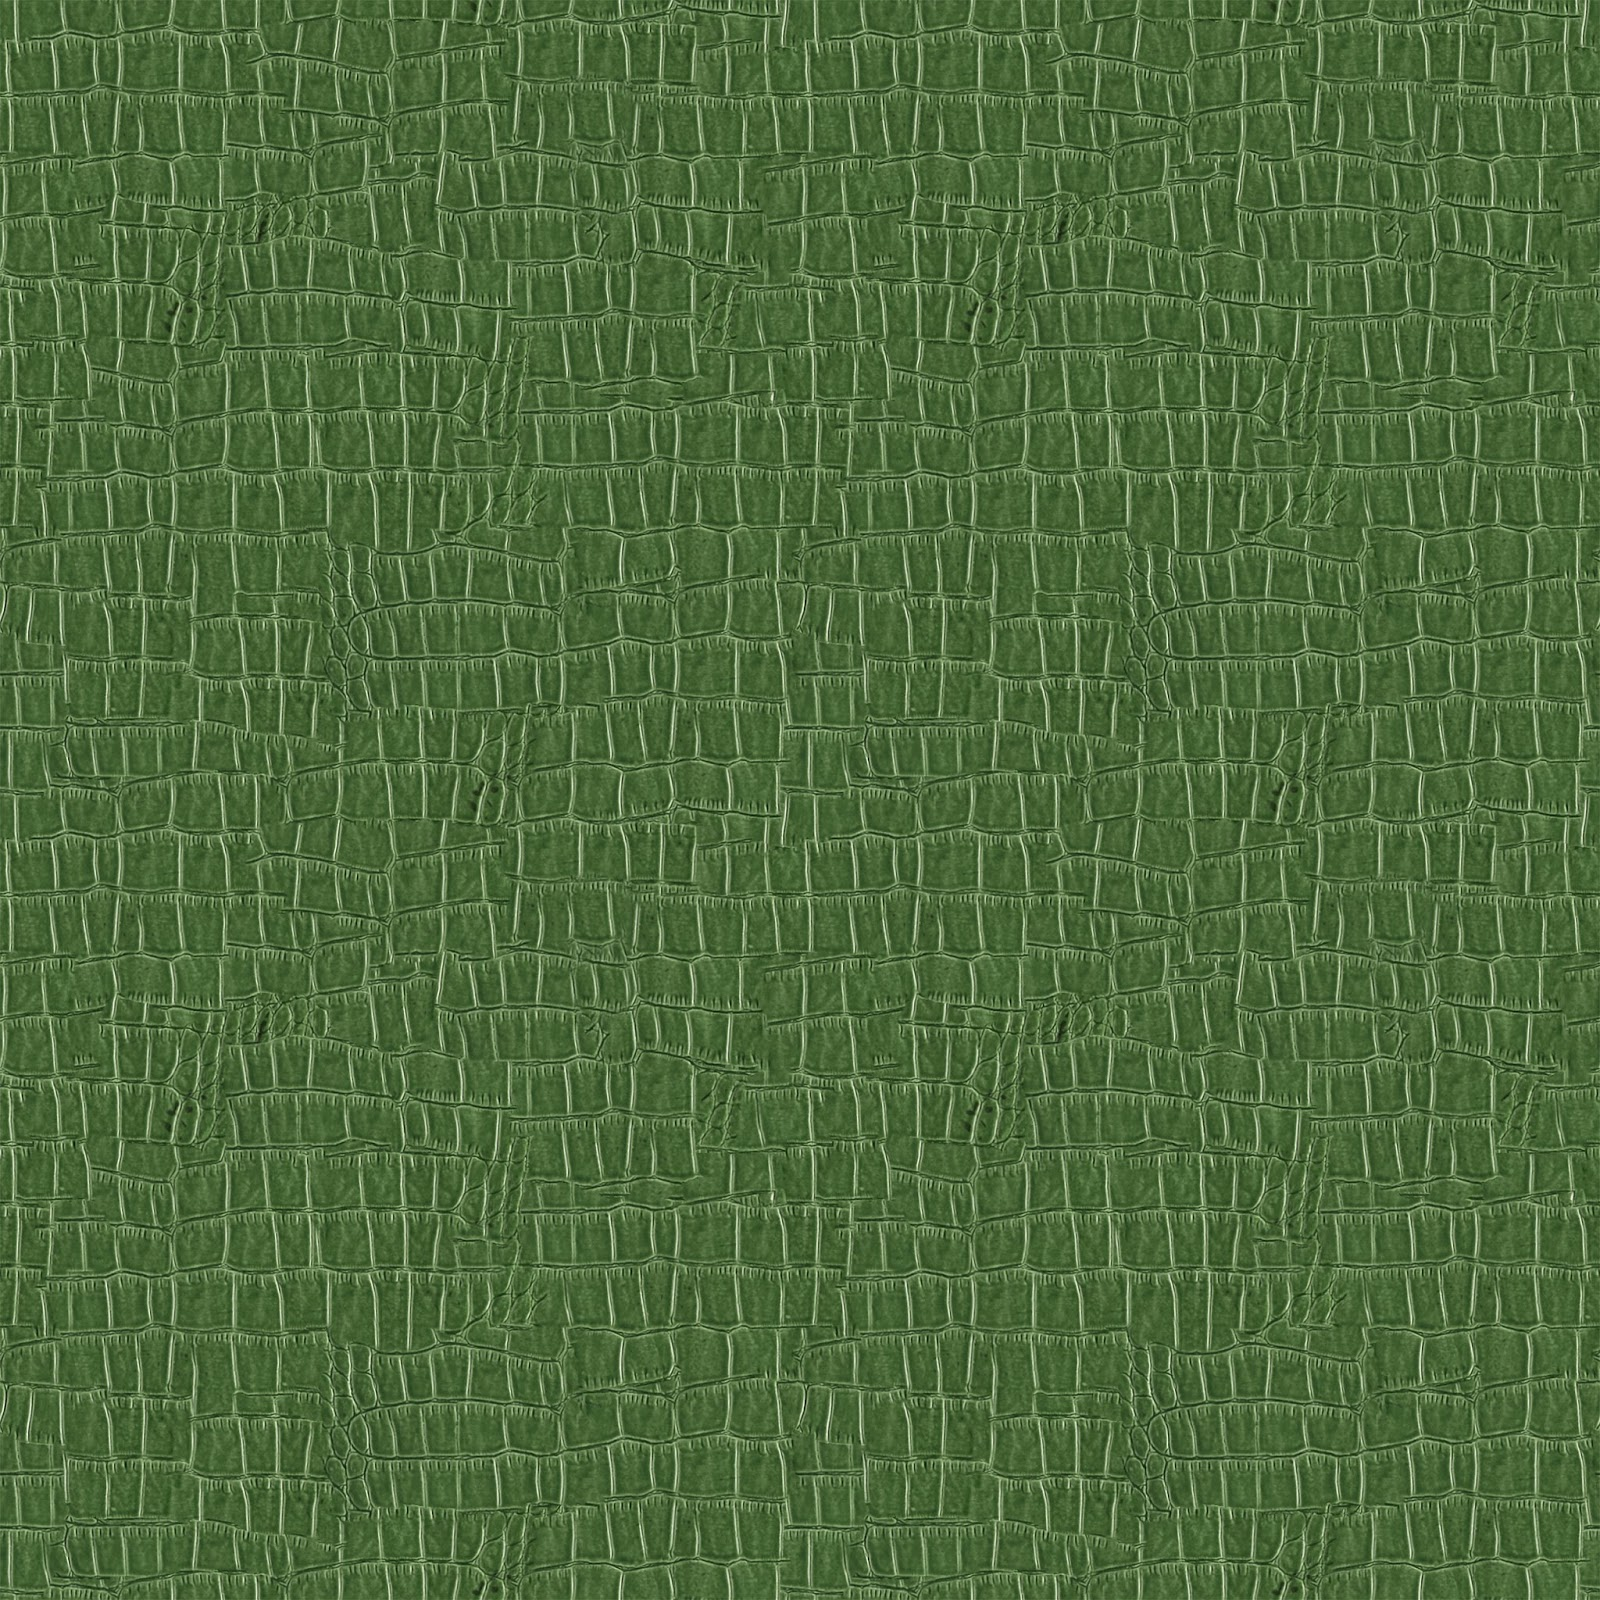 Tileable Green Leather Texture Maps Texturise Free